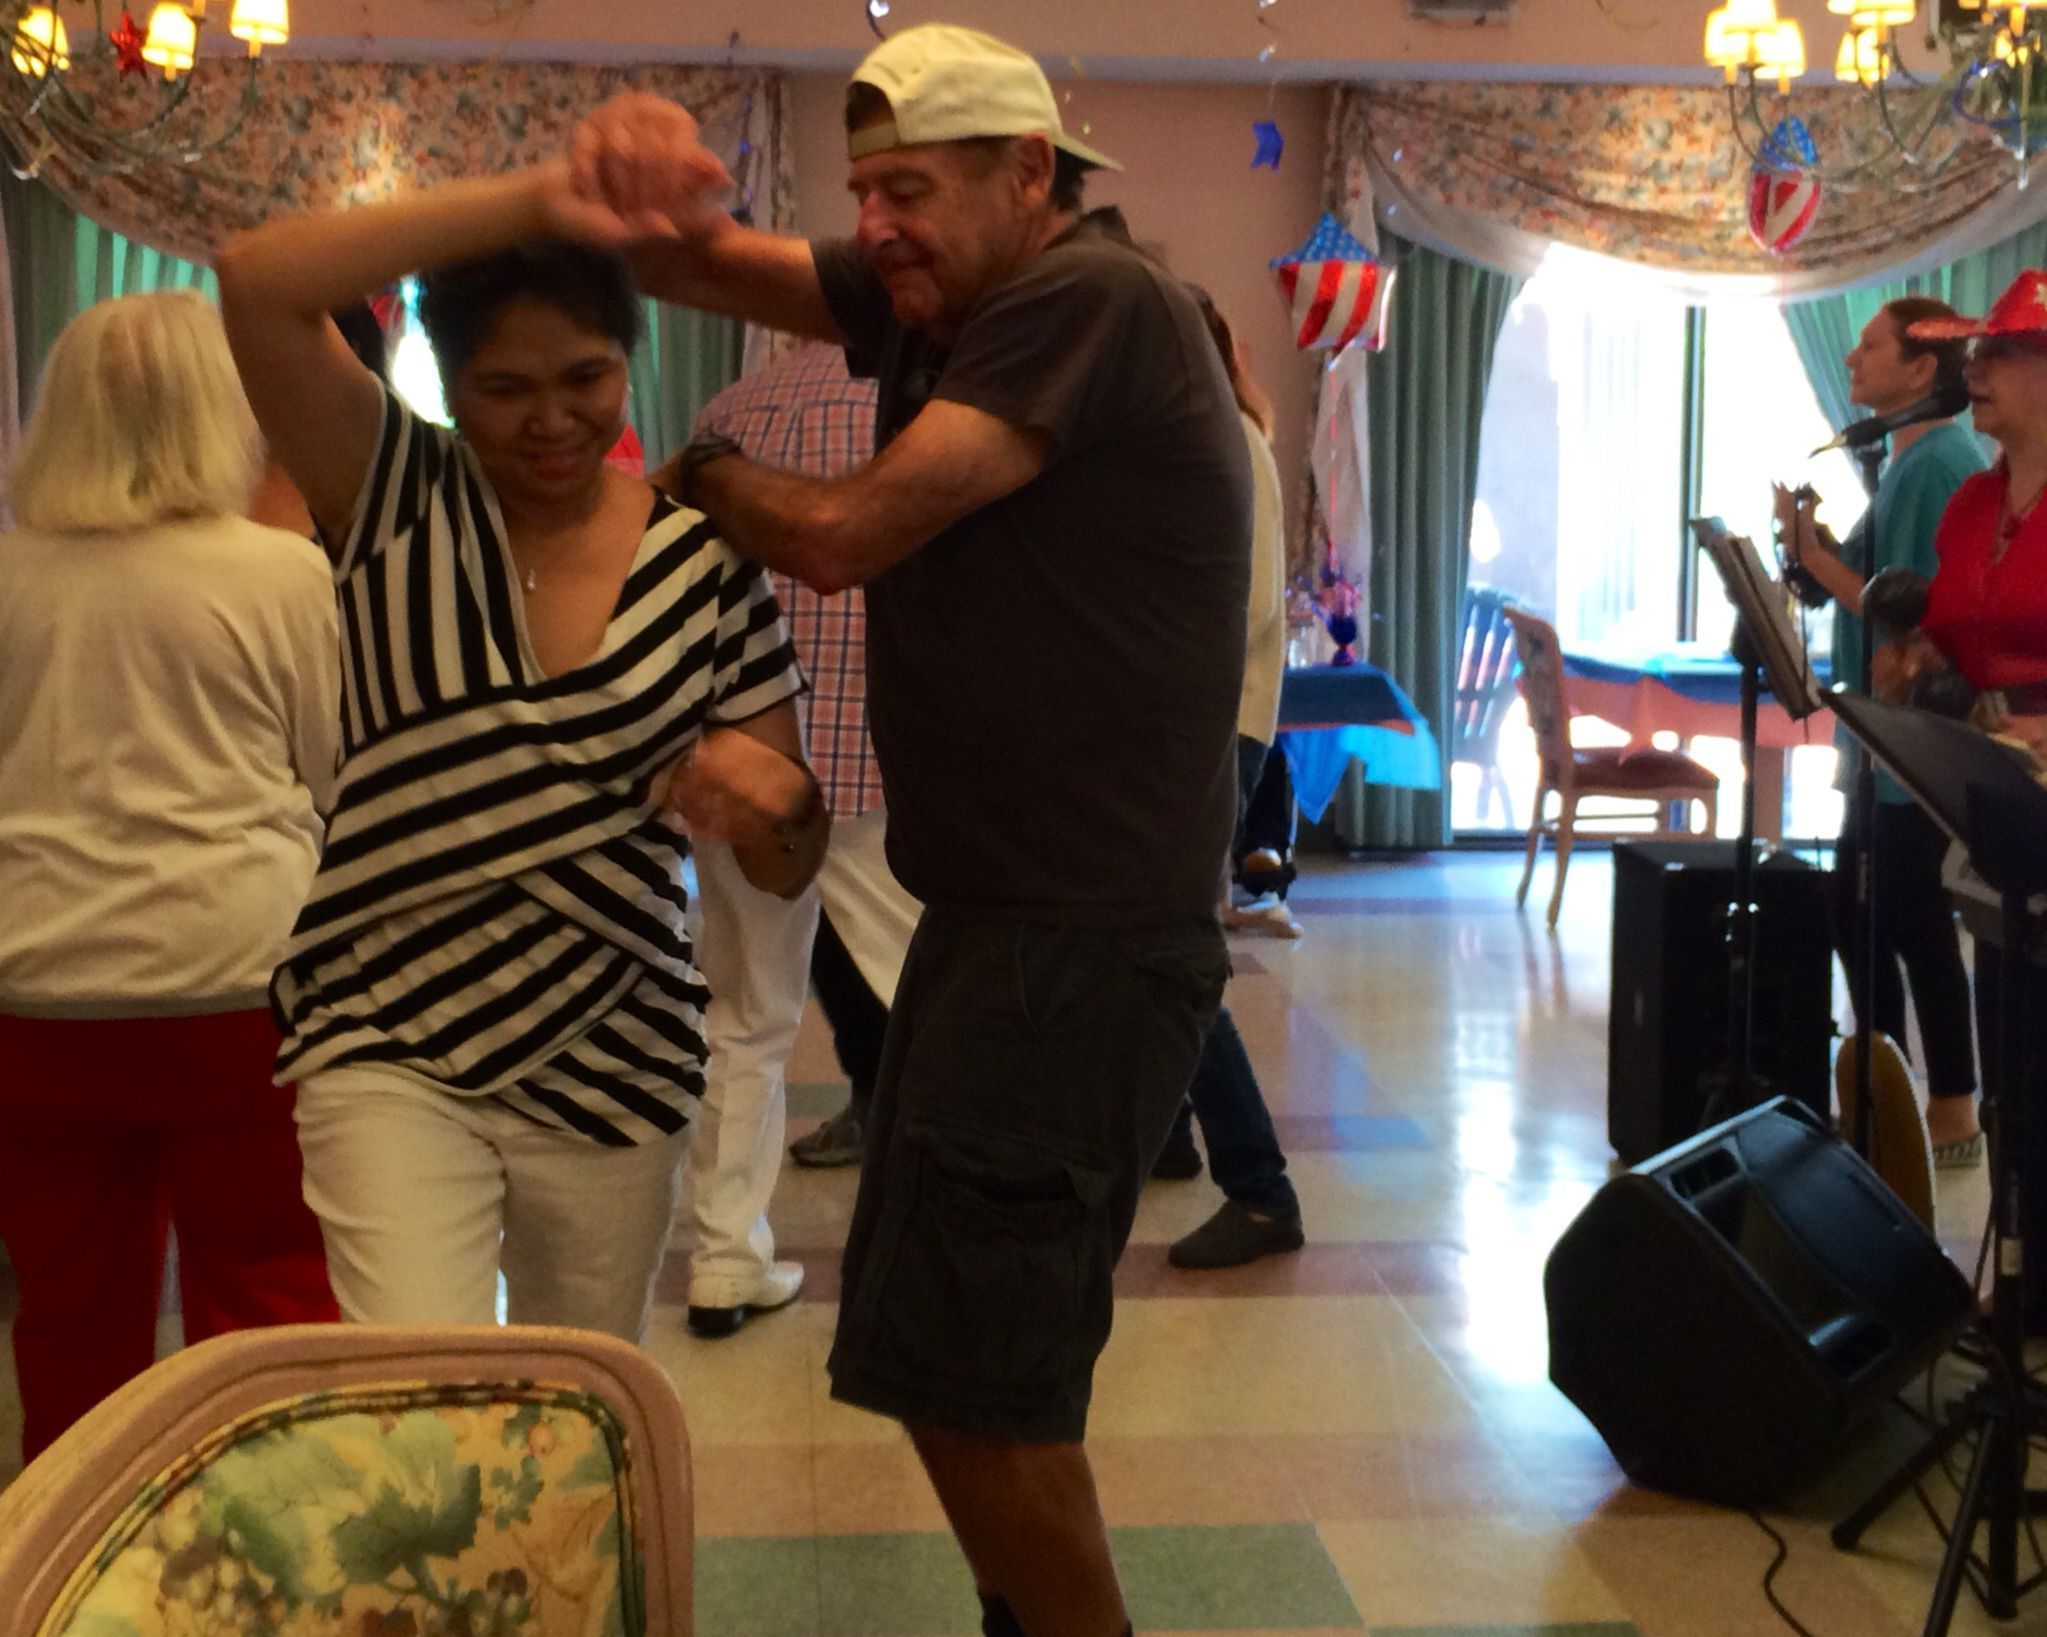 Joan's Journey - HVE Resident dances with aide on July 4